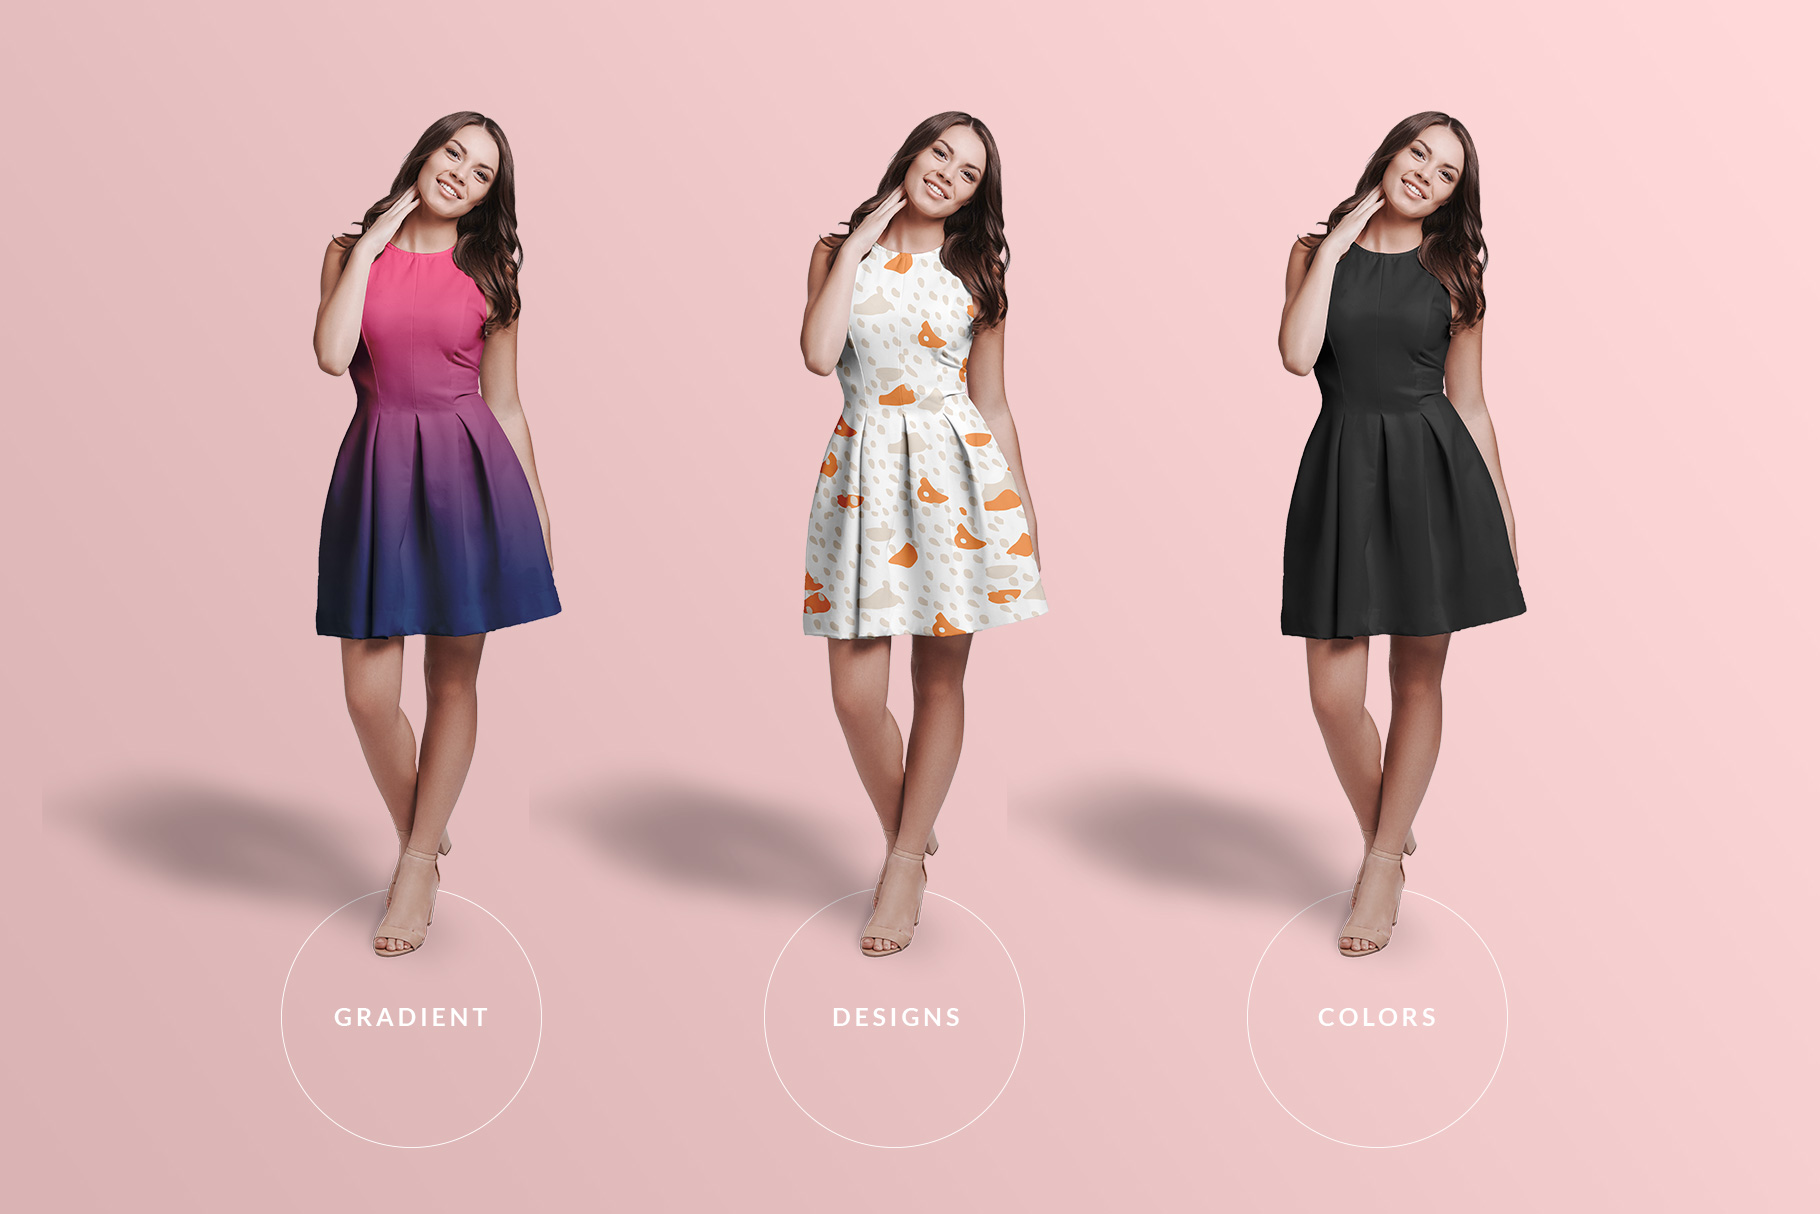 types of the female short party dress mockup